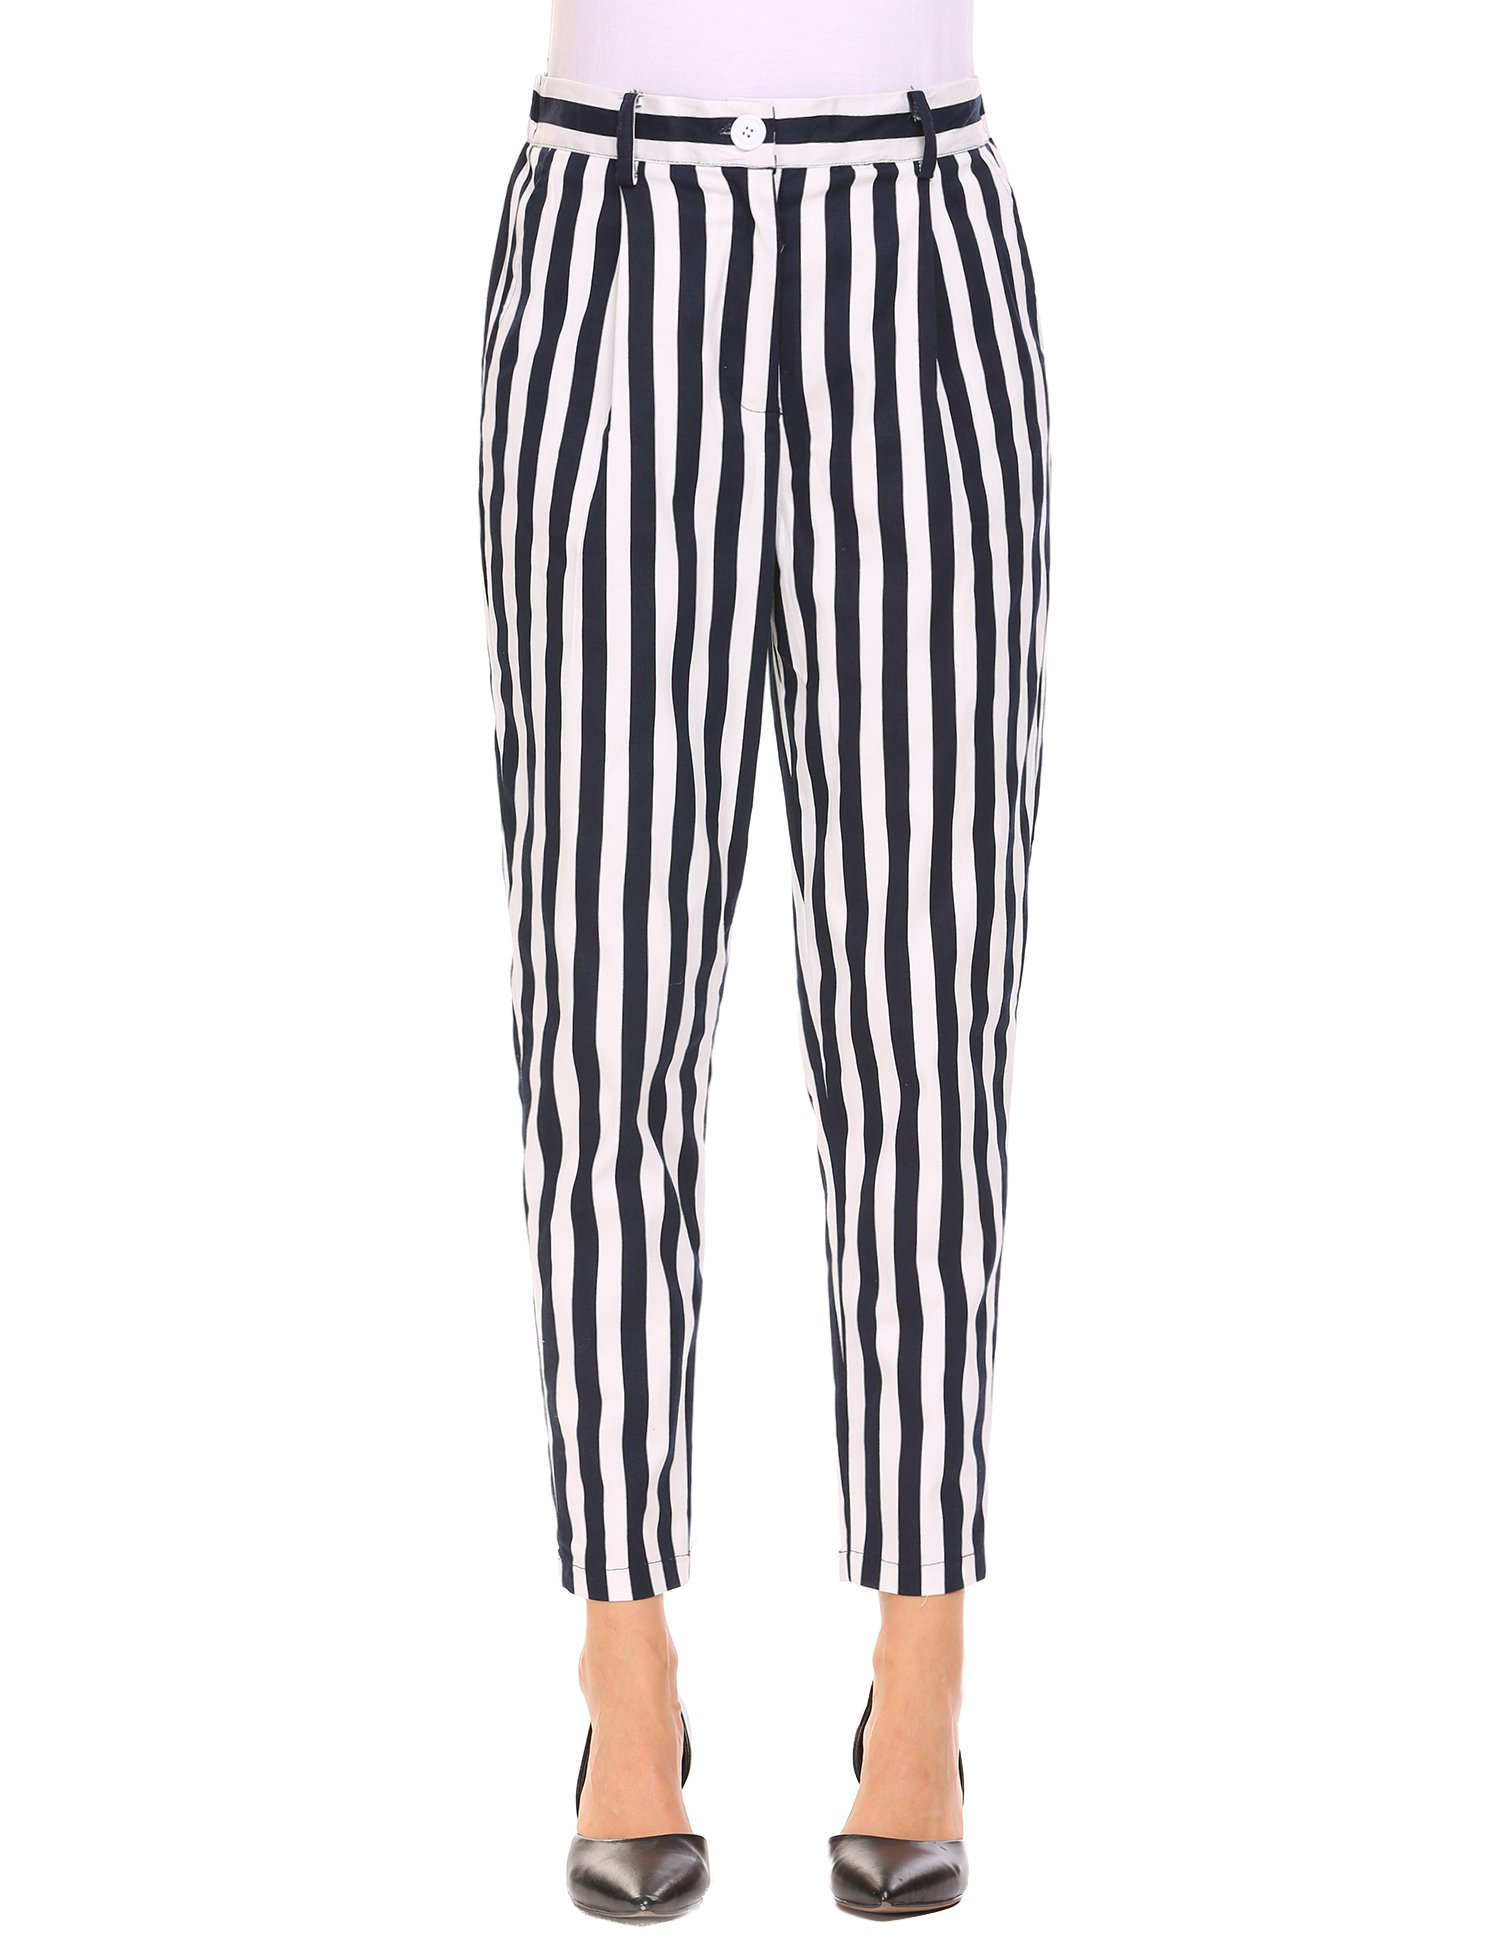 keliqq Women's Casual Striped Skinny Pants Business Harem Pants